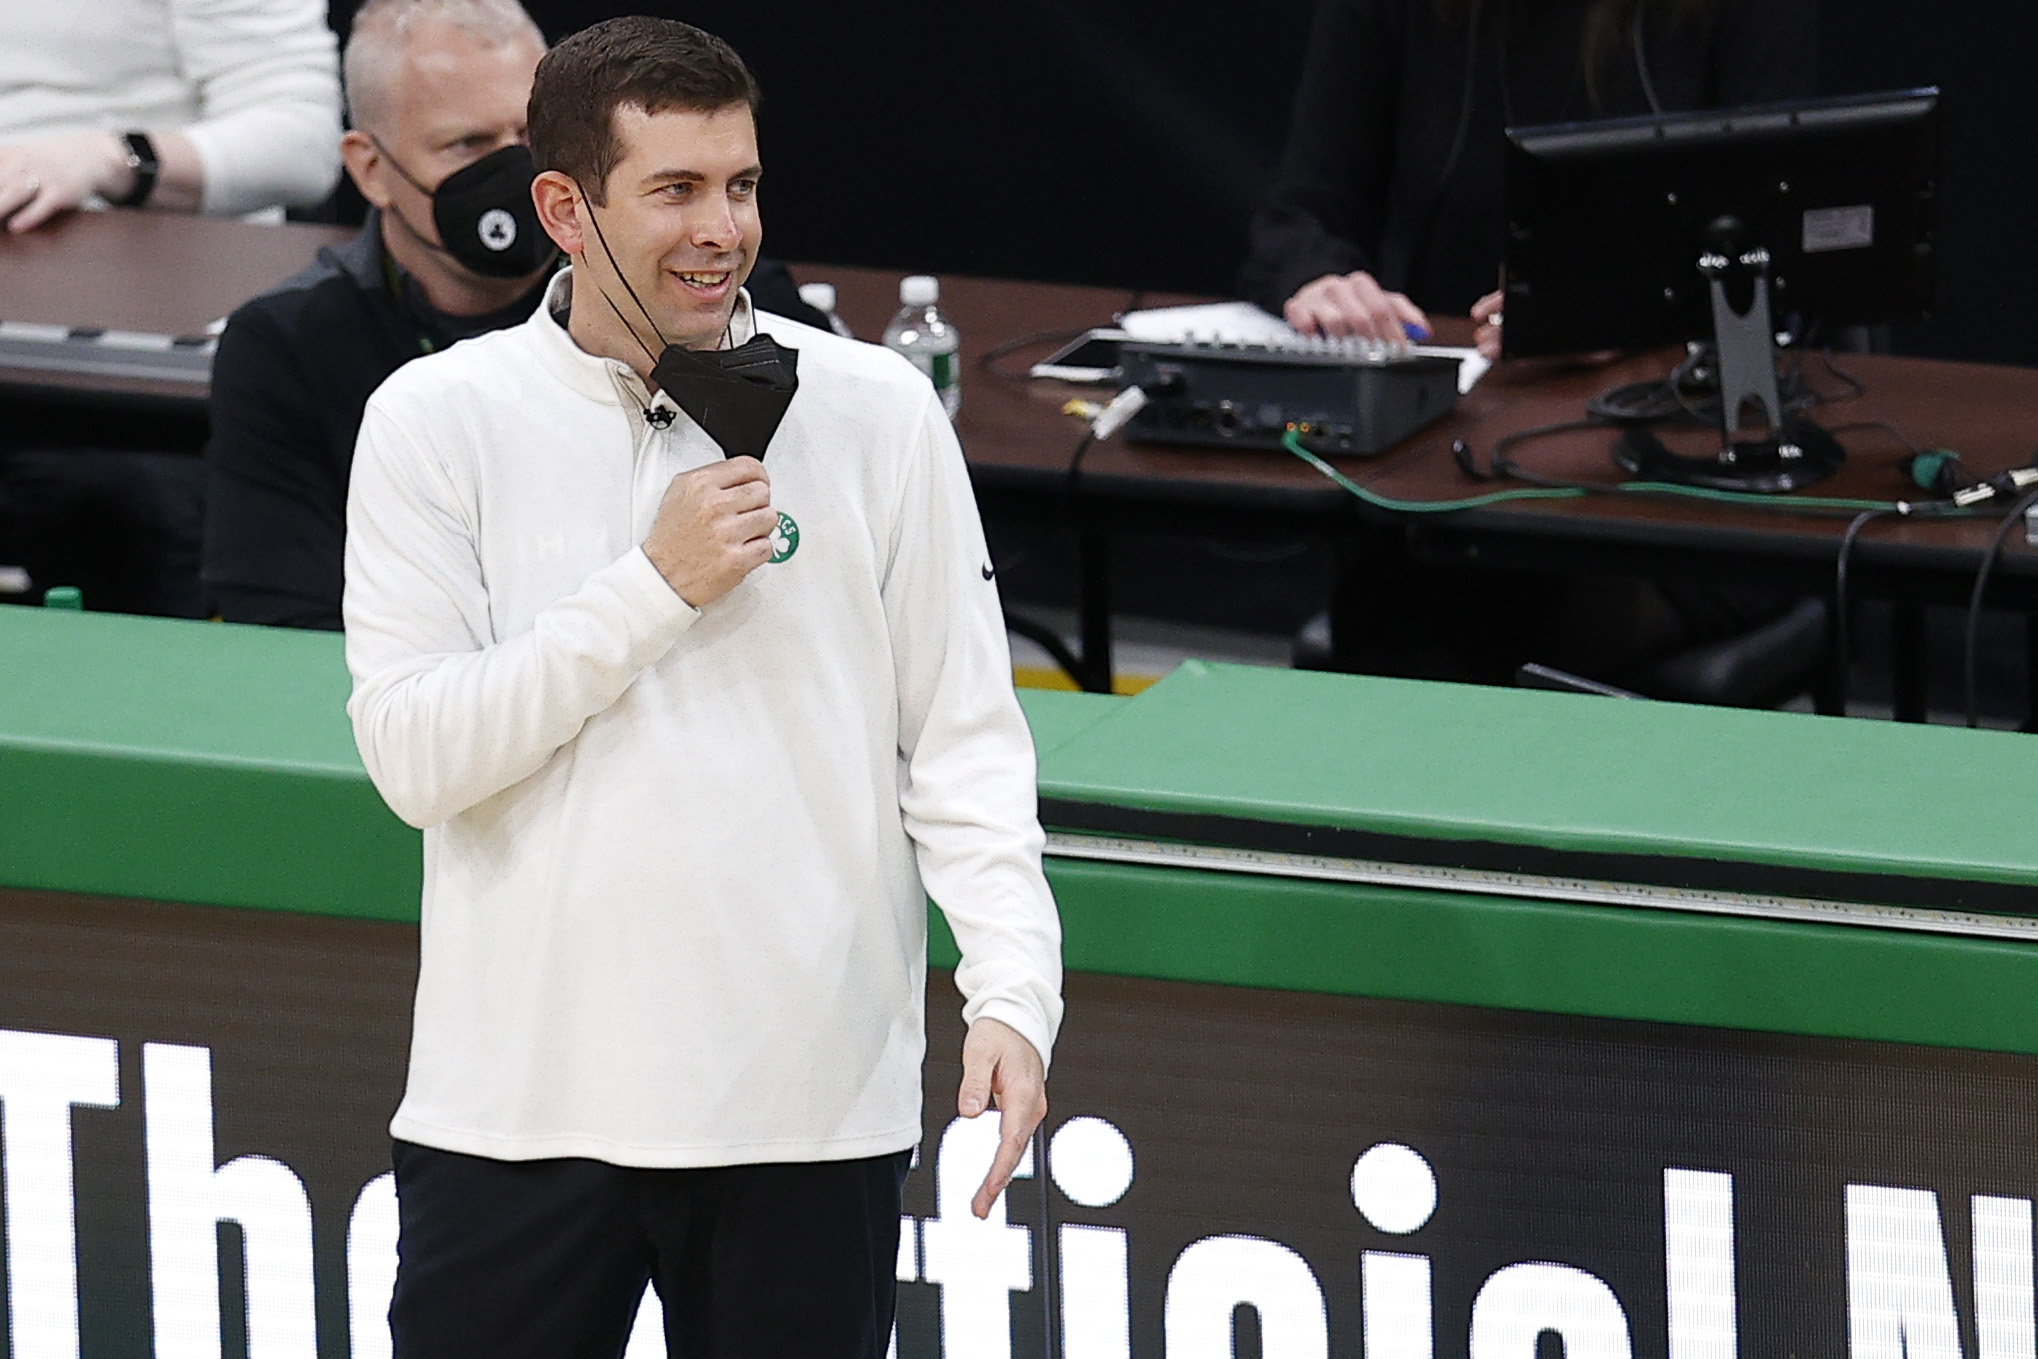 Stephen A. Smith Calmly Speaks the Truth About Boston Celtics and Brad Stevens